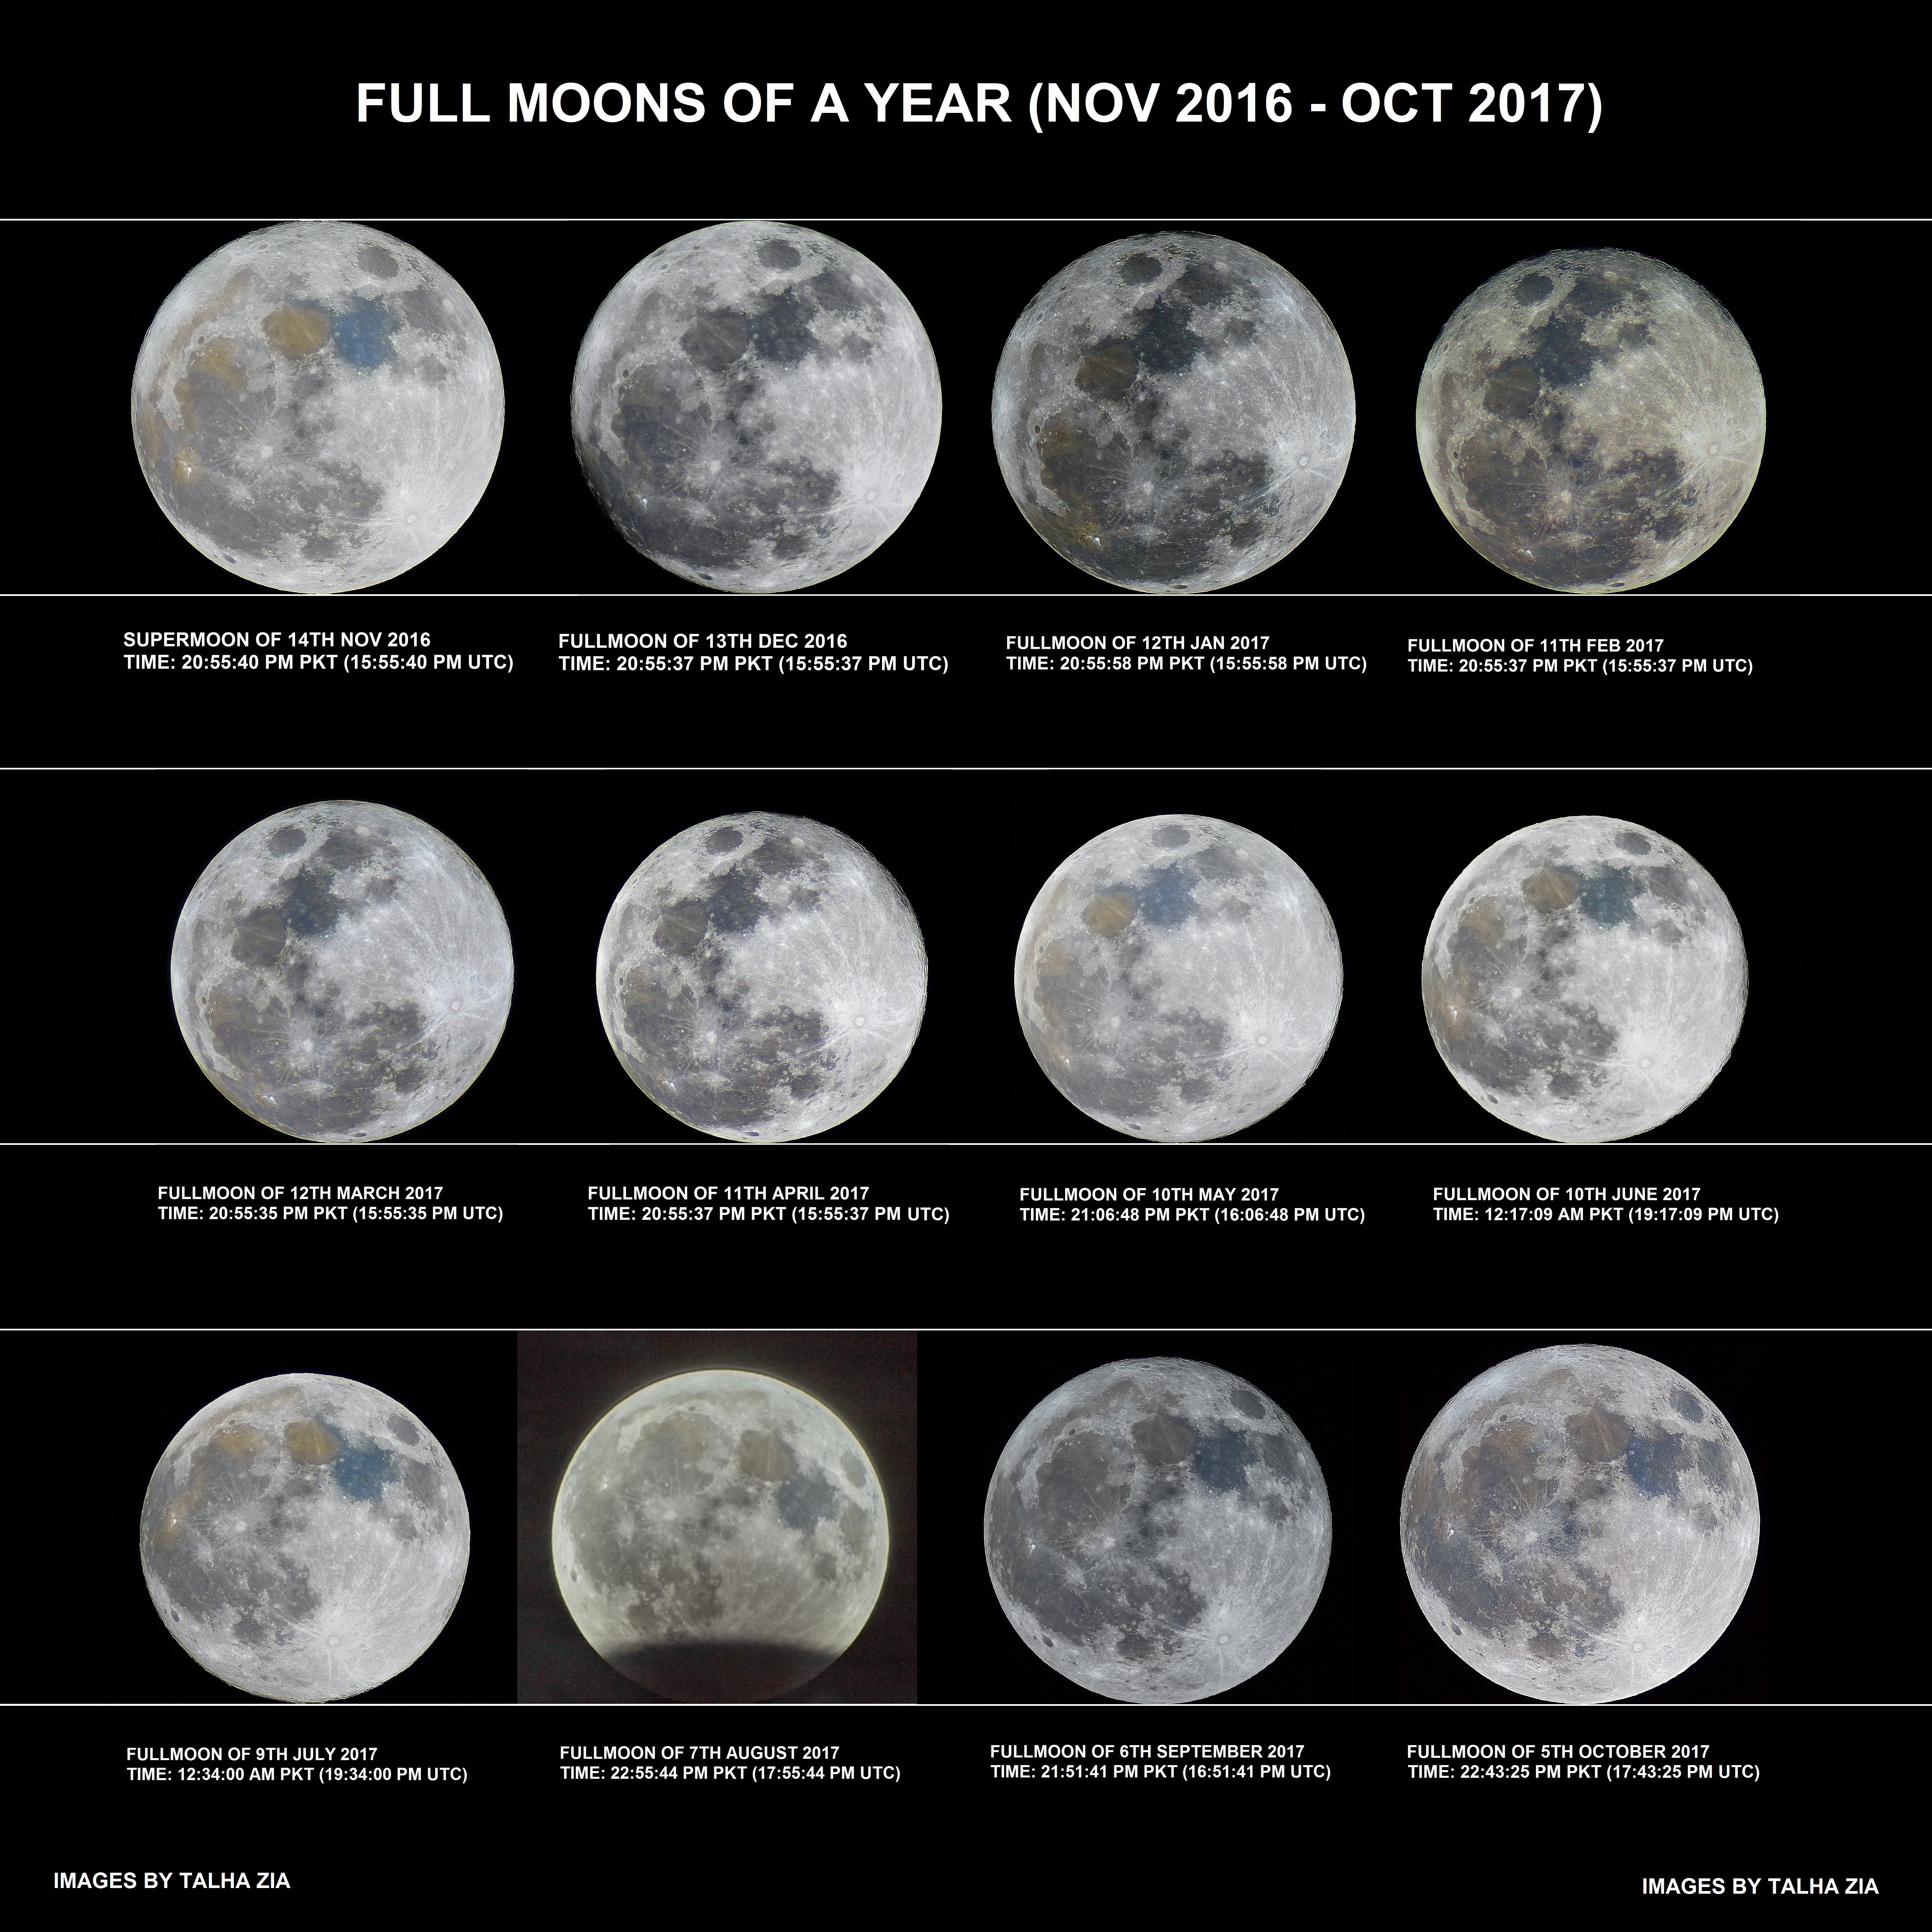 A Year of Full Moons